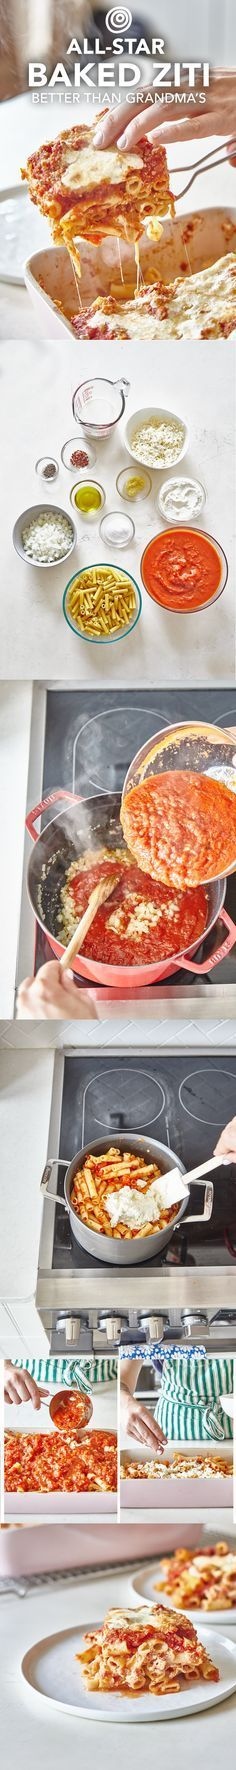 How to Make an All-Star No-Meat Baked Ziti. Better than grandma's! We make ours with ricotta and mozzarella cheese. Feel free to add ground beef or italian sausage if you like it, but this is so good you won't miss it. A classic, crowd-pleasing Italian comfort food recipe for a crowd -- like your family!